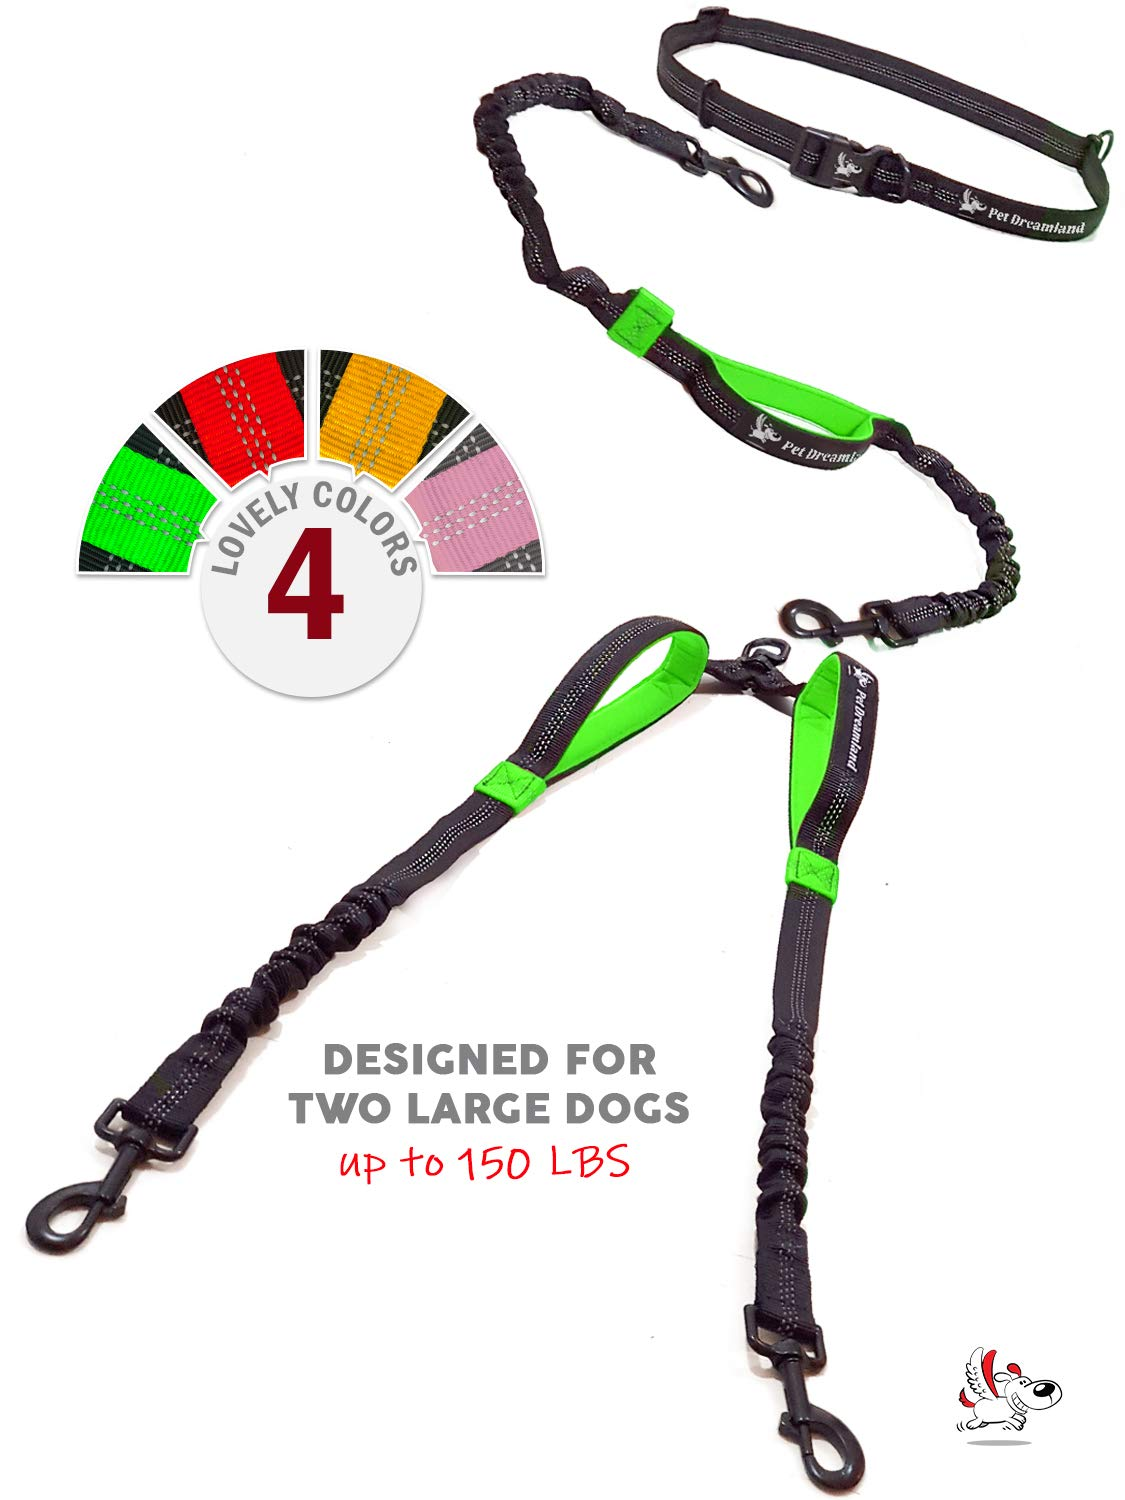 Pet Dreamland Dog Leash for Two Dogs - 2 Dogs Coupler Hands Free No Pull Tandem Dual Waist Leash for Large Dogs (Black & Green)